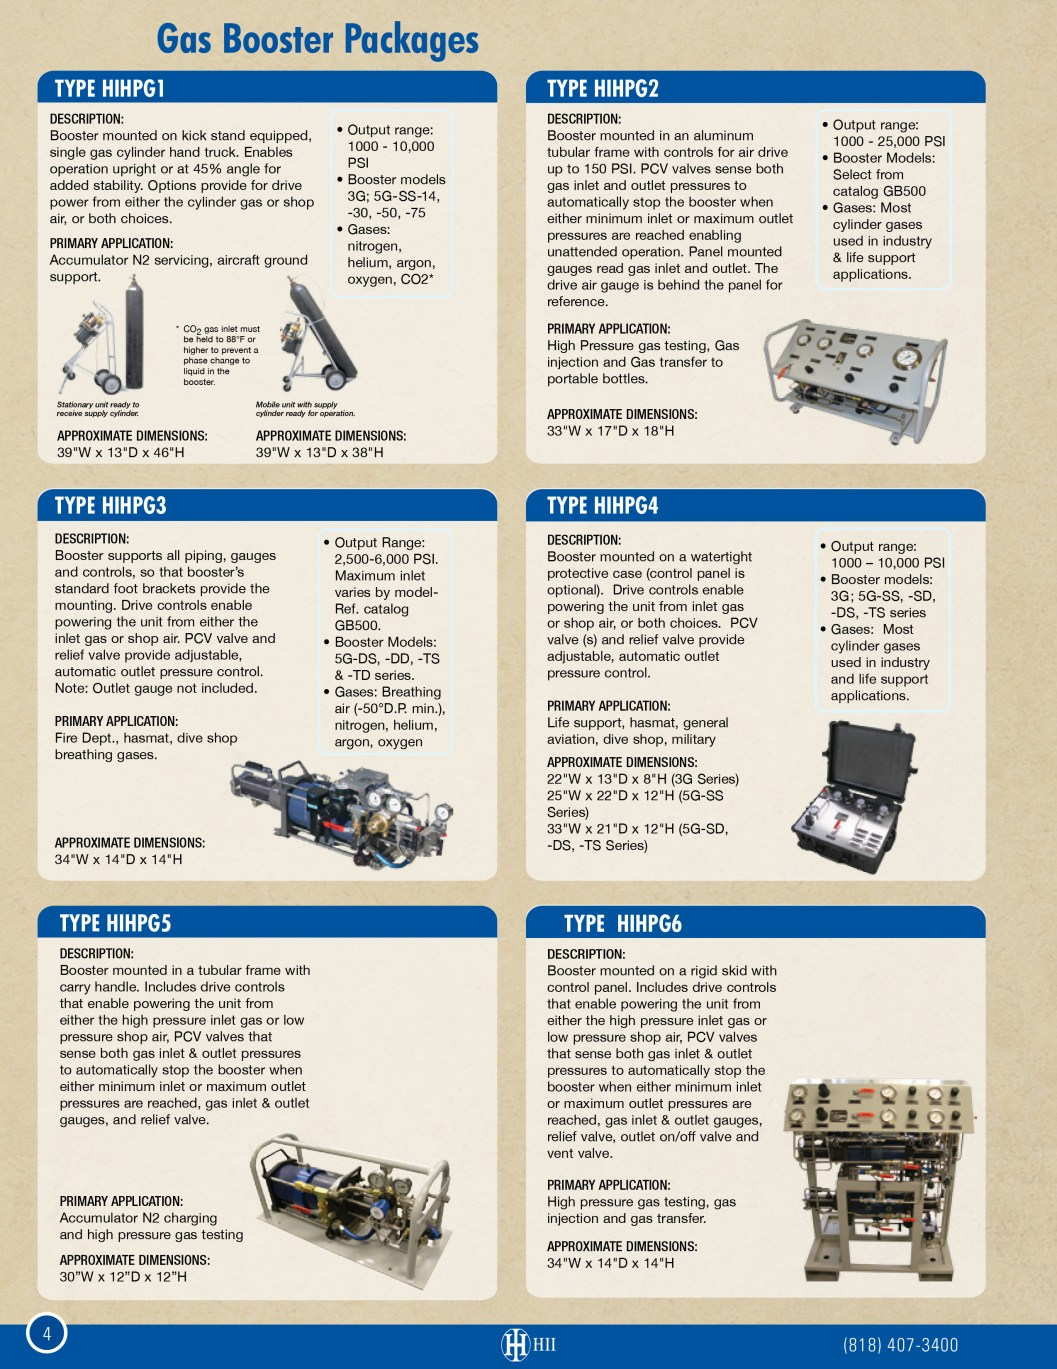 Gas Booster Packages